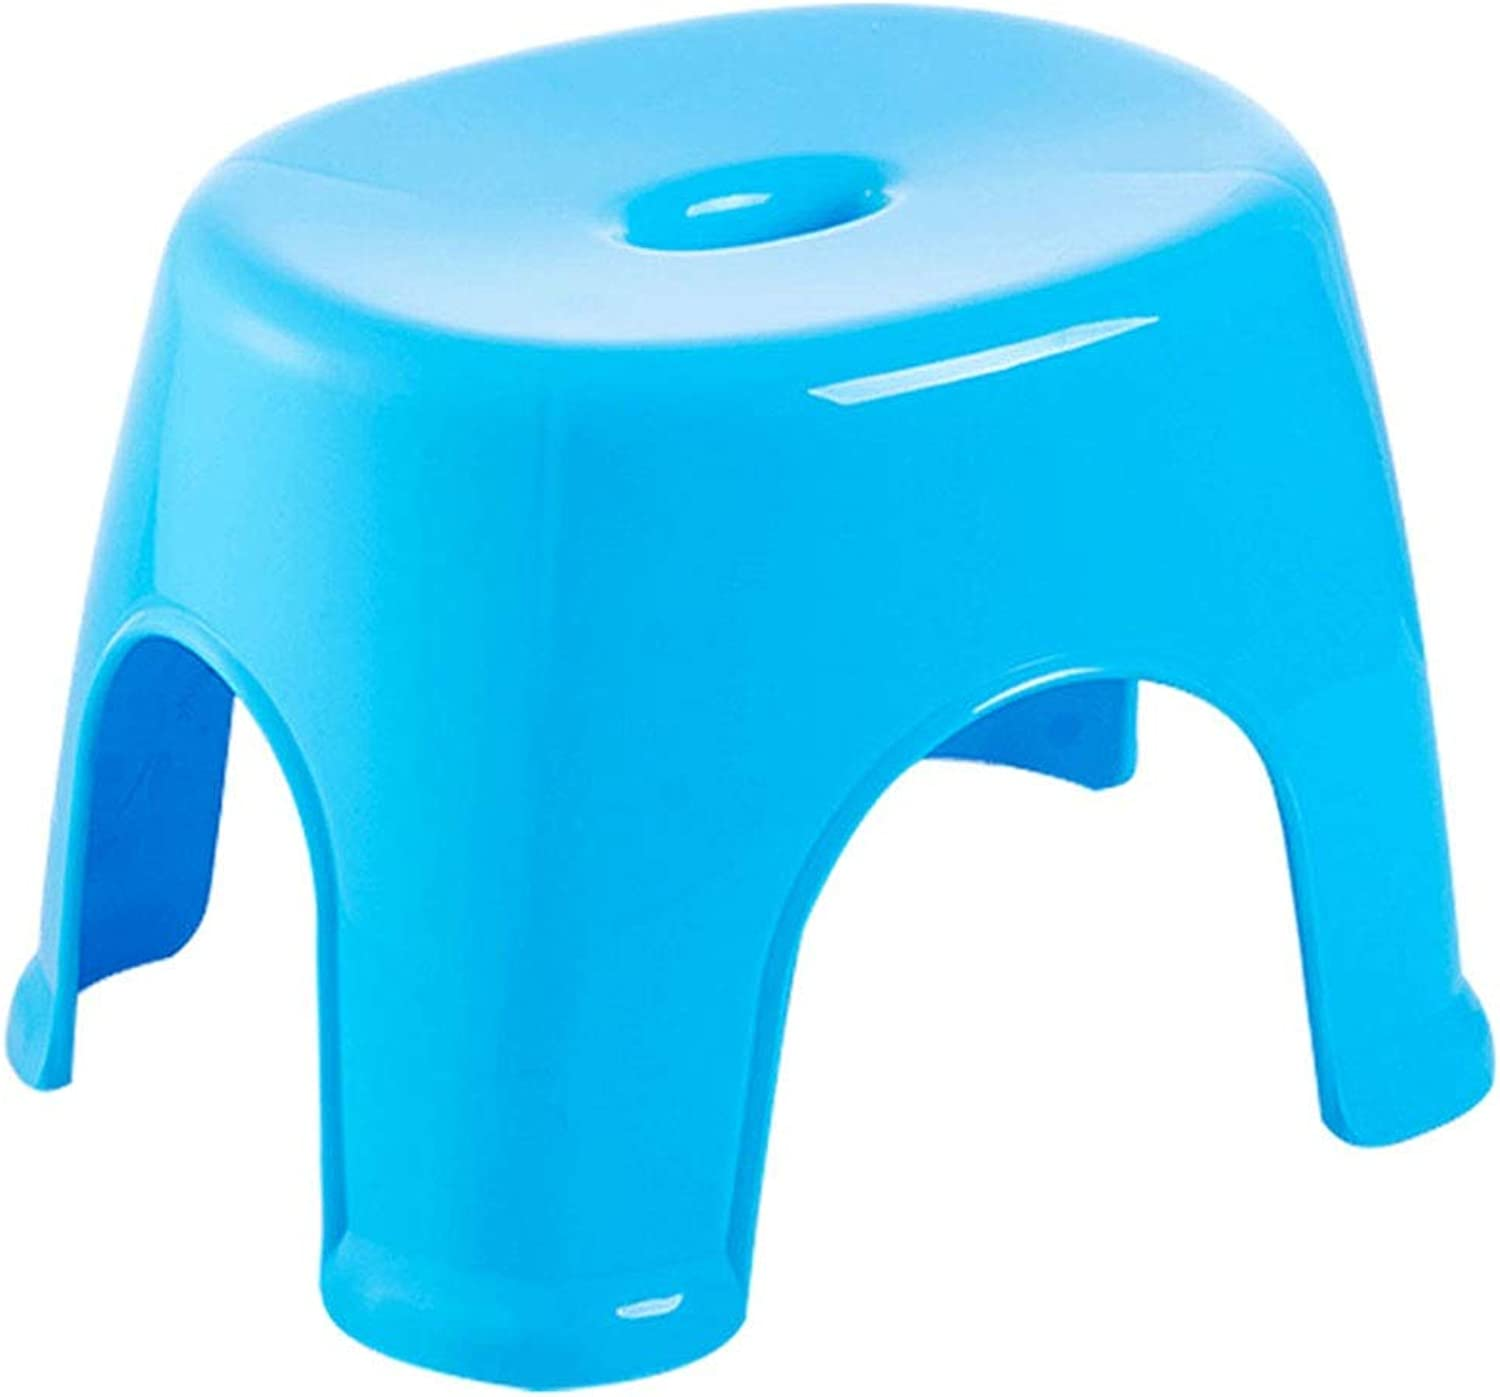 ZHAOYONGLI Footstools,Otools Bathroom Stool Thick Plastic Stool Changing His shoes Stool Fashion Creative Adults (color   bluee, Size   32.5  26  24cm)